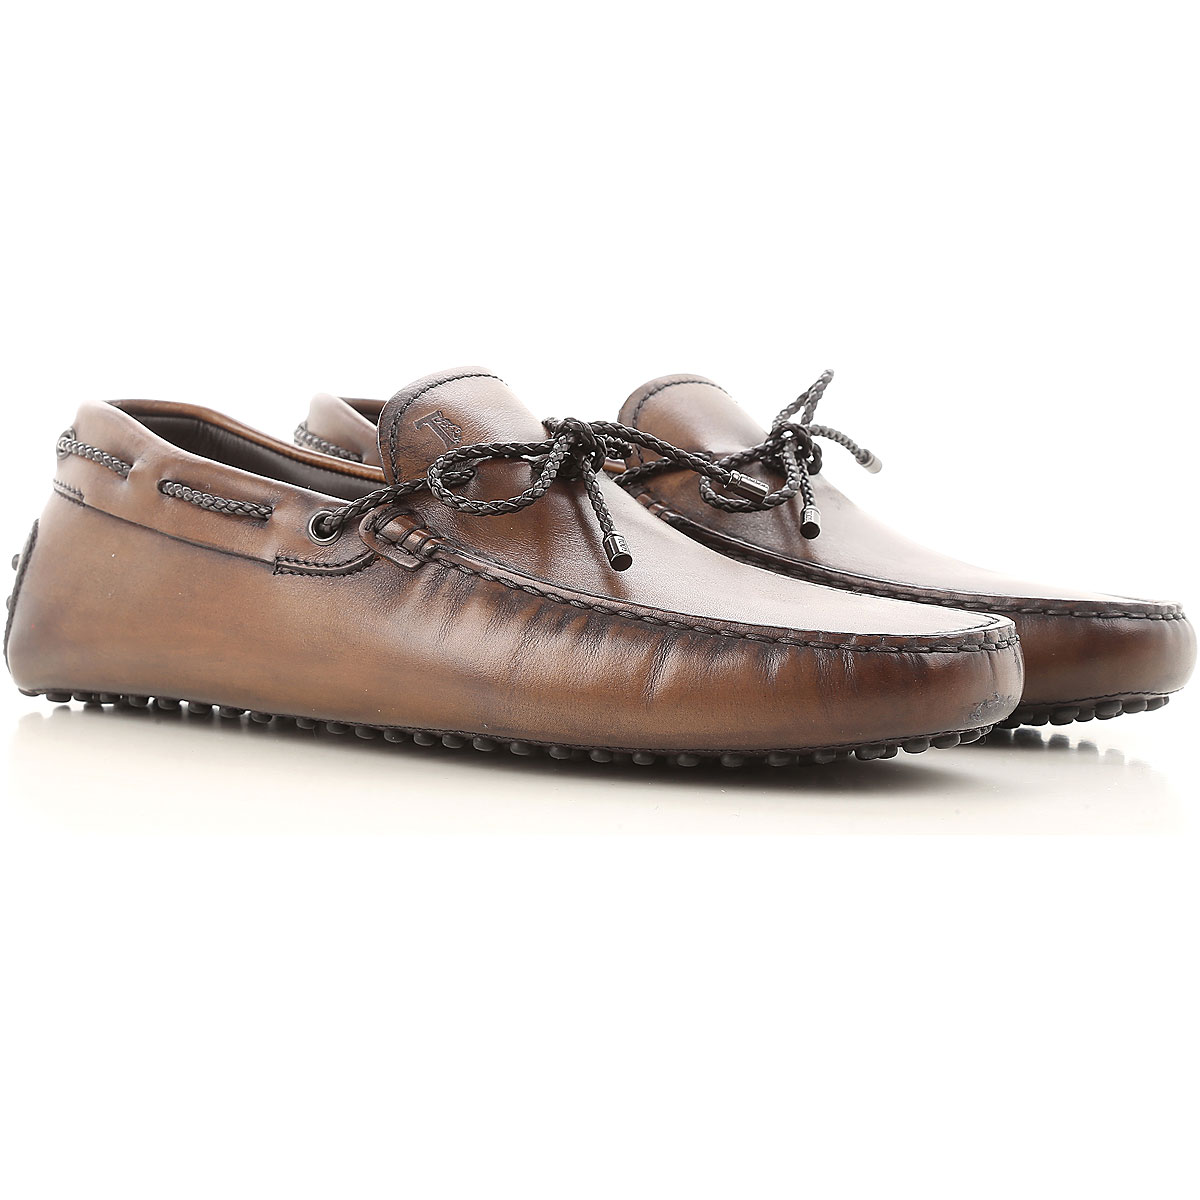 Image of Tods Driver Loafer Shoes for Men, Cocoa, Leather, 2017, 11 11.5 12 7 8 8.5 9 9.5